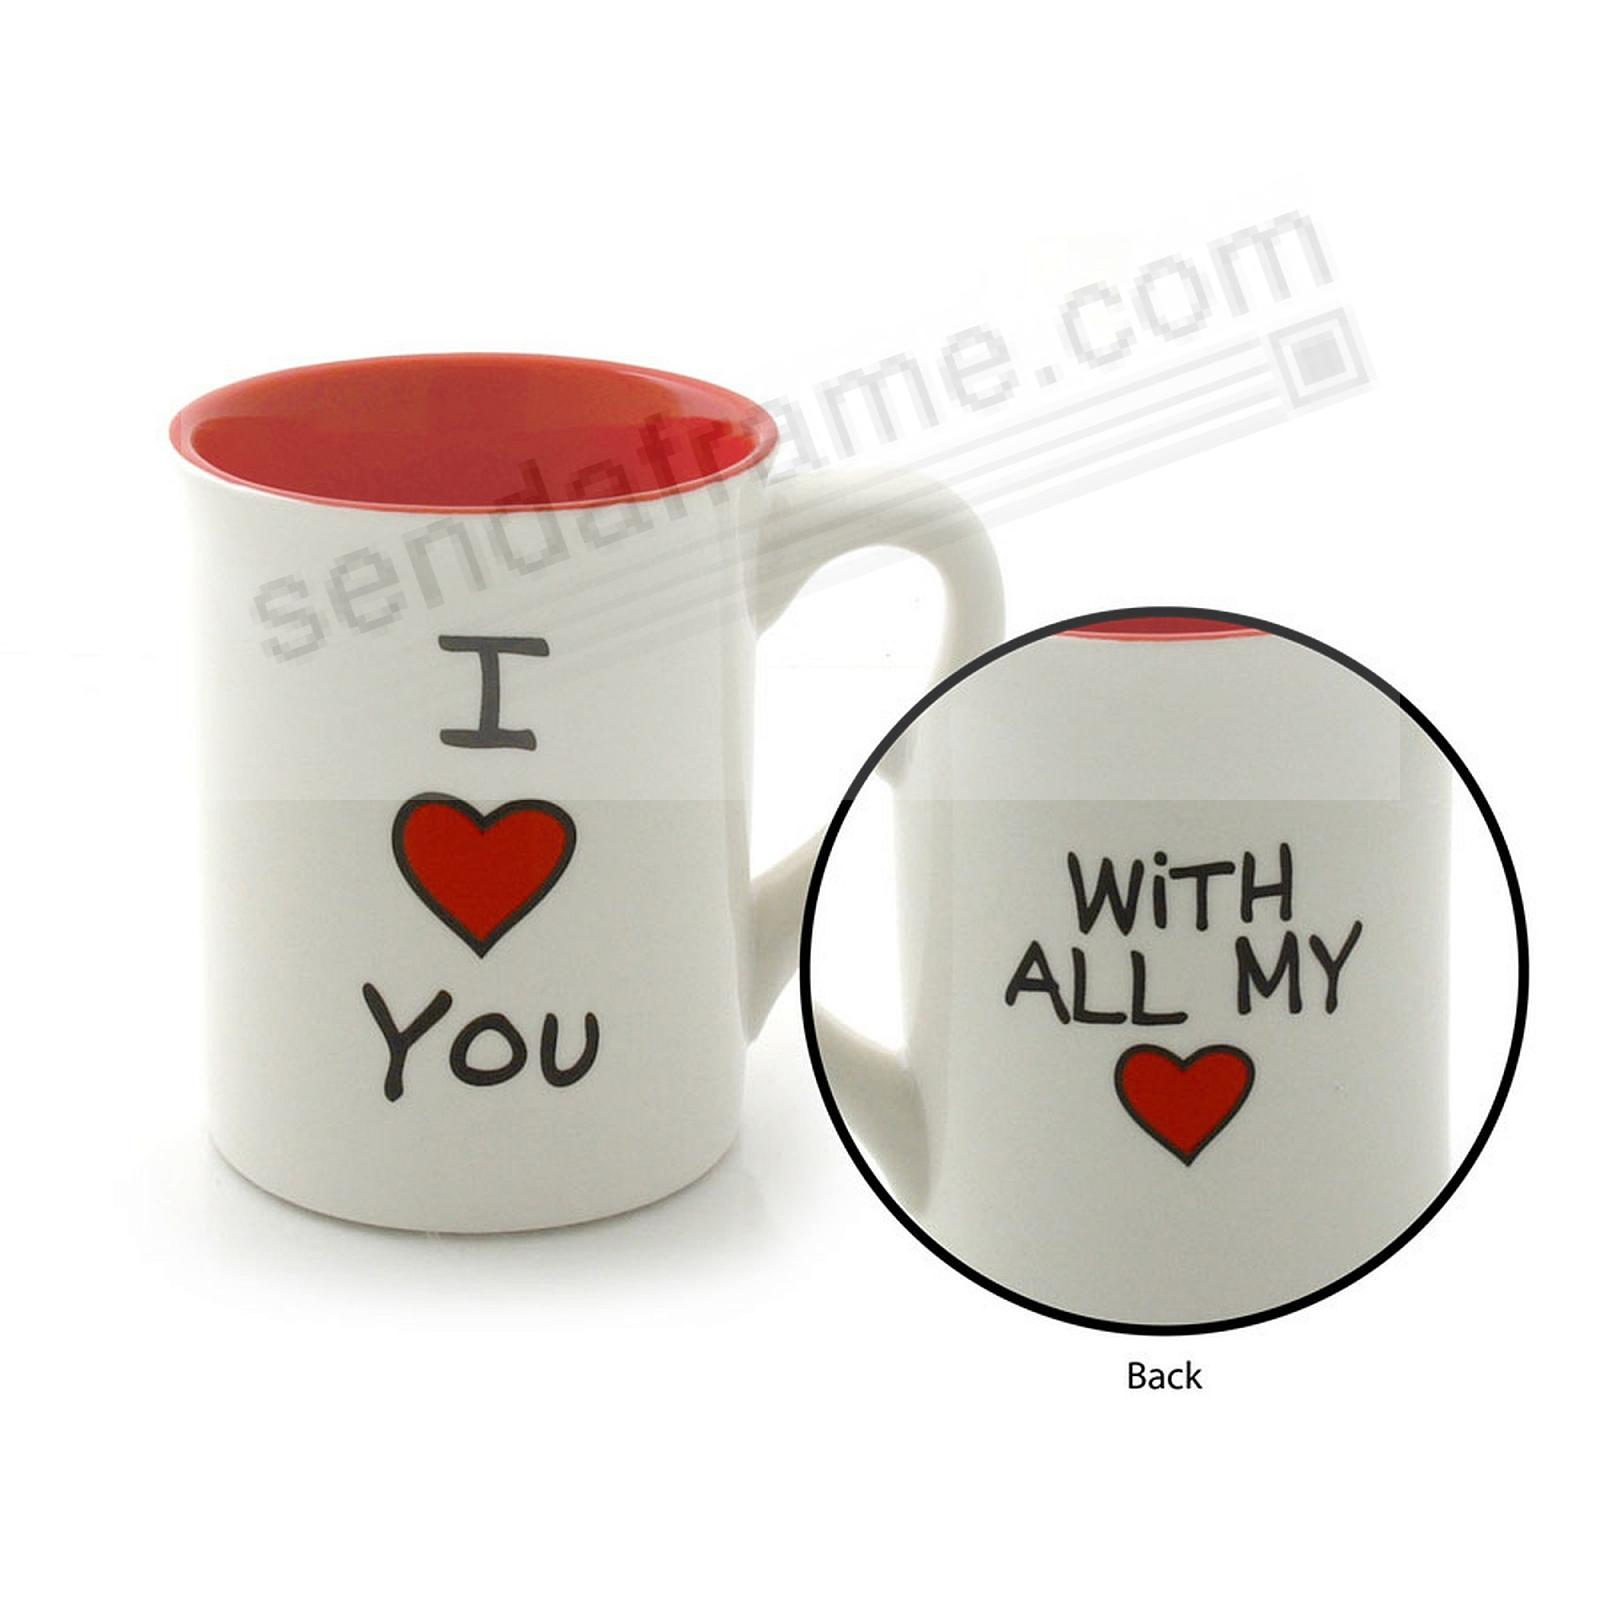 I {HEART} YOU Mug by Our Name is Mud®